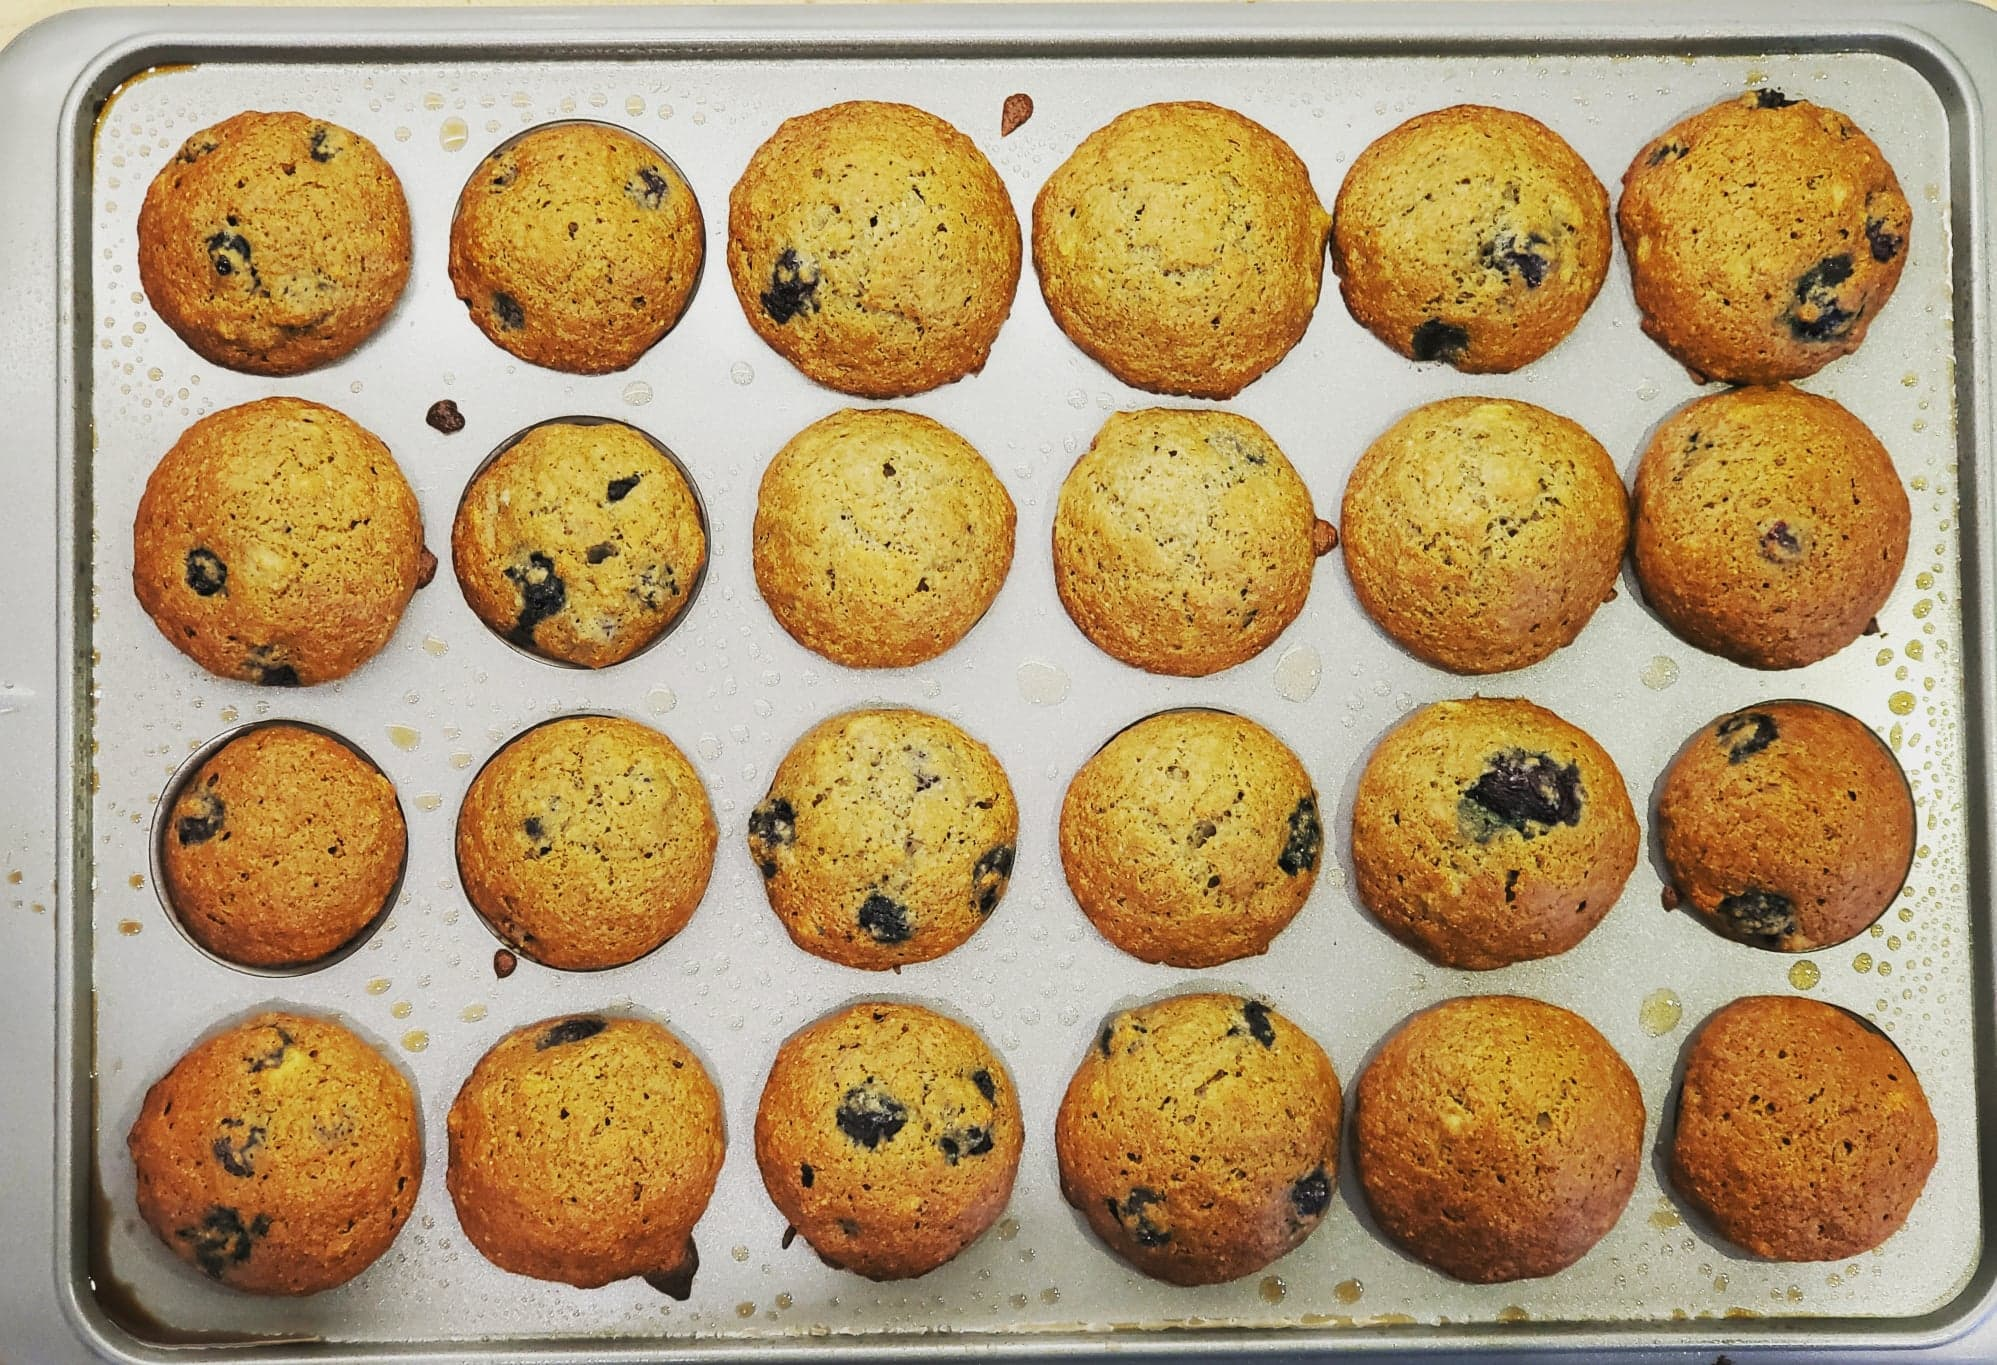 Delicious and Nutritious Whole Wheat Banana and Blueberry Muffins Yves OU Line Chamberland